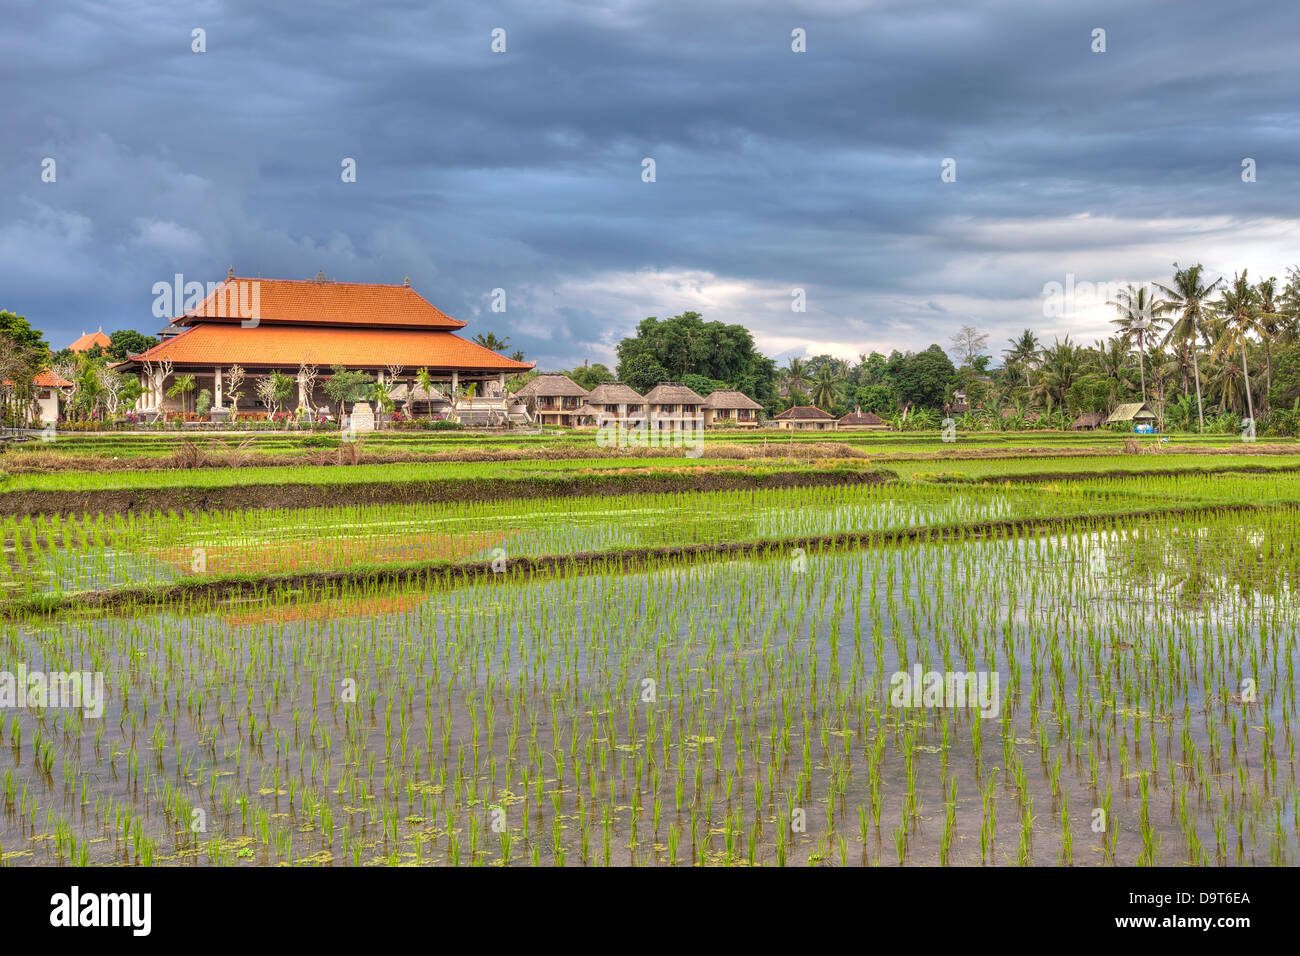 Ubud nature - Stock Image